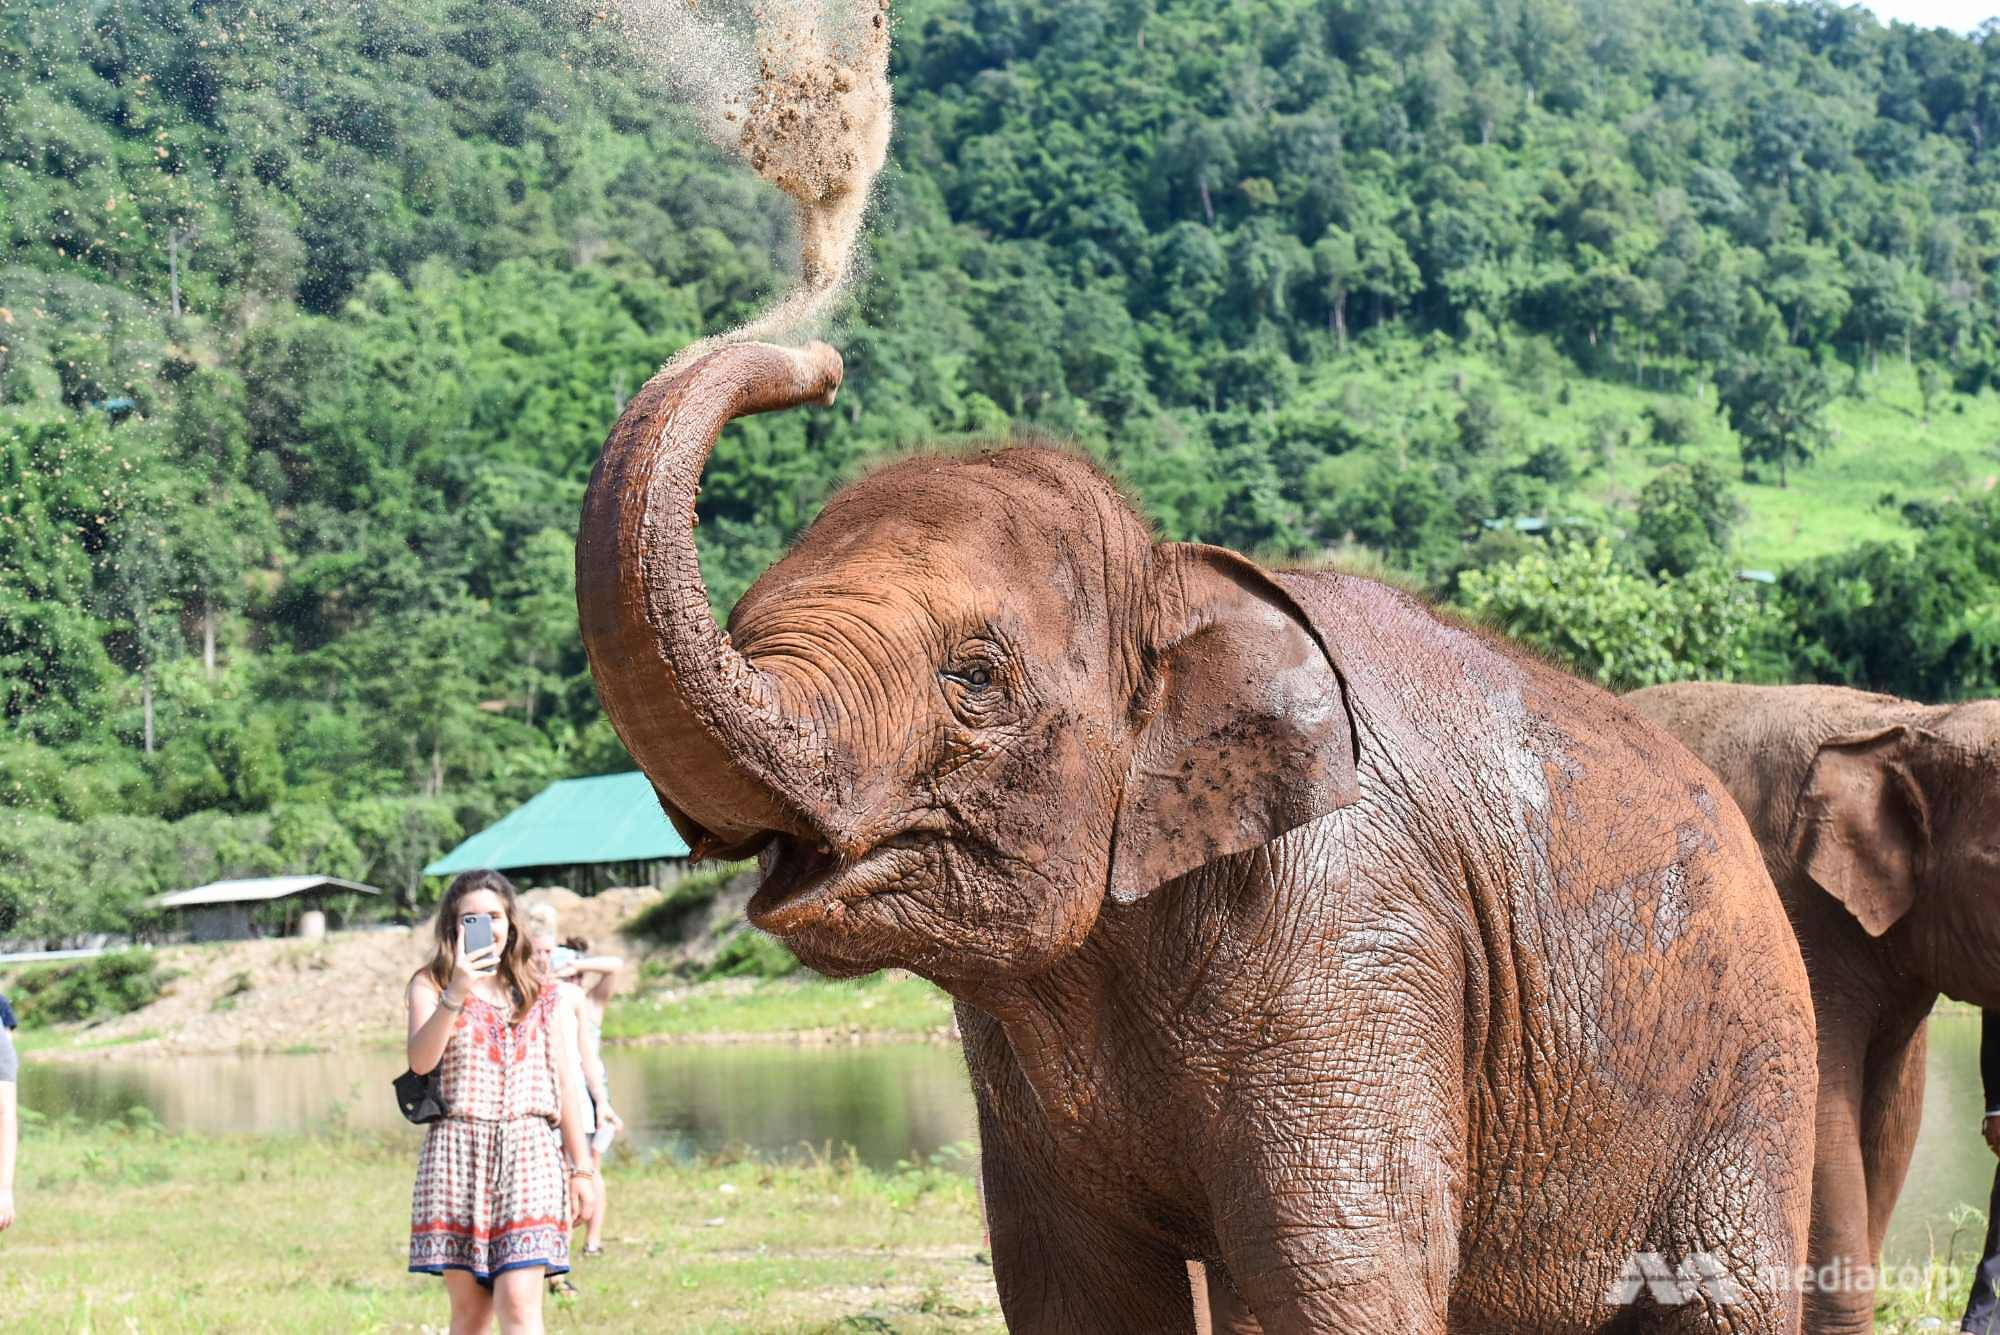 Beasts of burden: A young elephant's journey to salvation